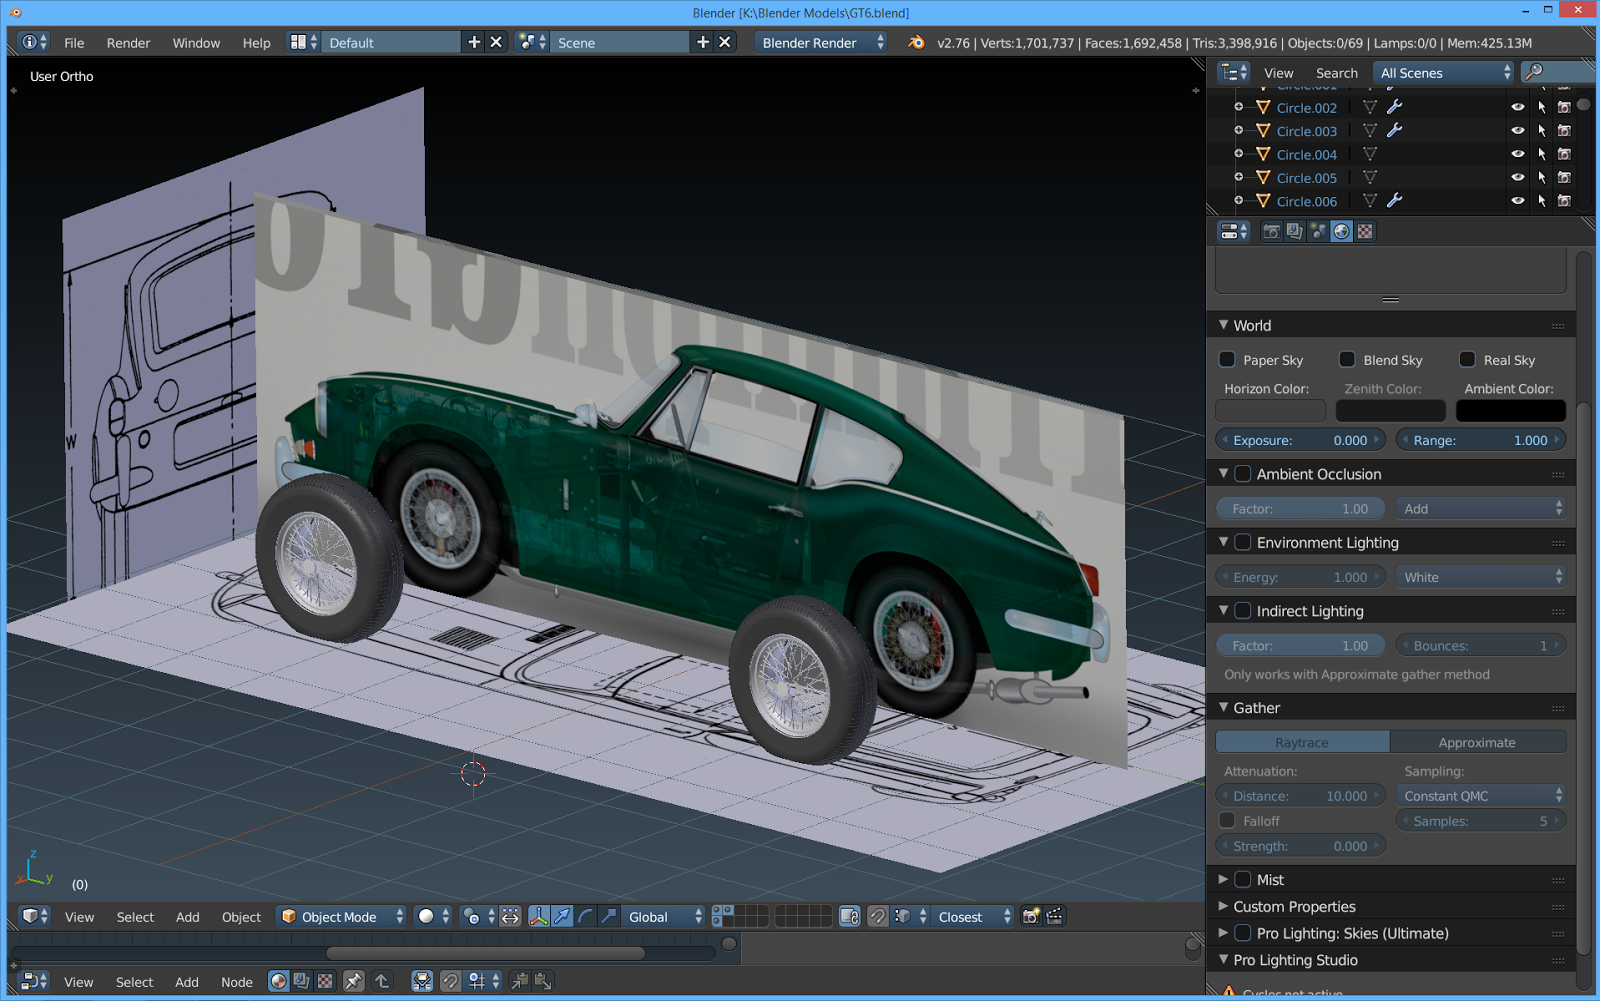 The tinkers workshop blender 3d 1967 triumph gt6 project i then put the blueprint along with the colored broadside view of the car into blender and aligned them so i could get an accurate layout to set up the body malvernweather Image collections